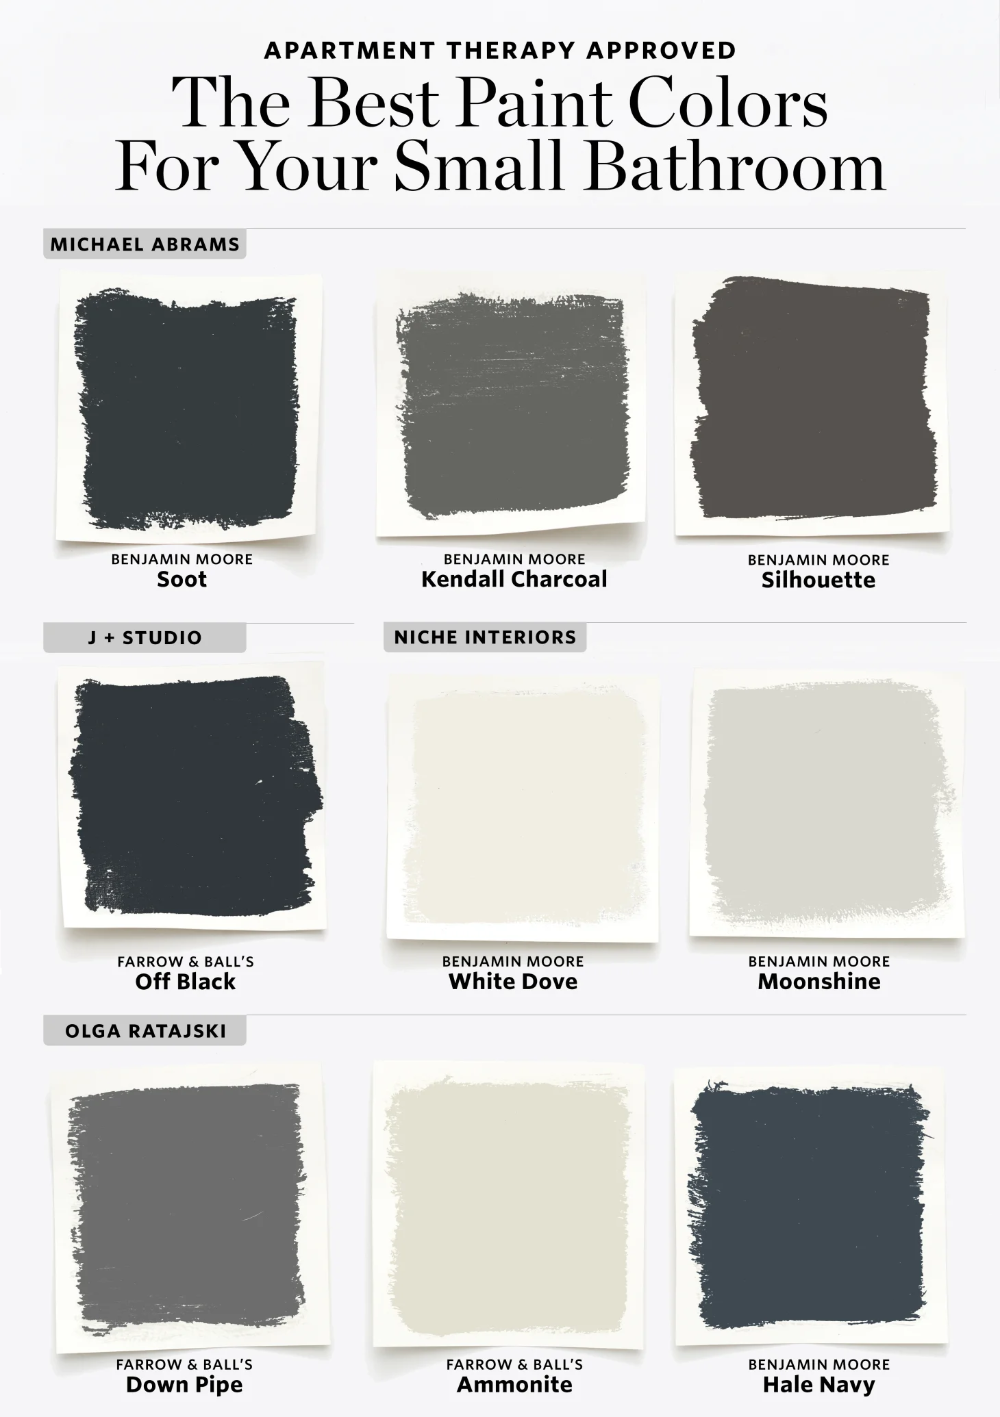 16 Perfect Paint Shades For Your Bathroom Small Bathroom Colors Bathroom Paint Colors Best Bathroom Colors